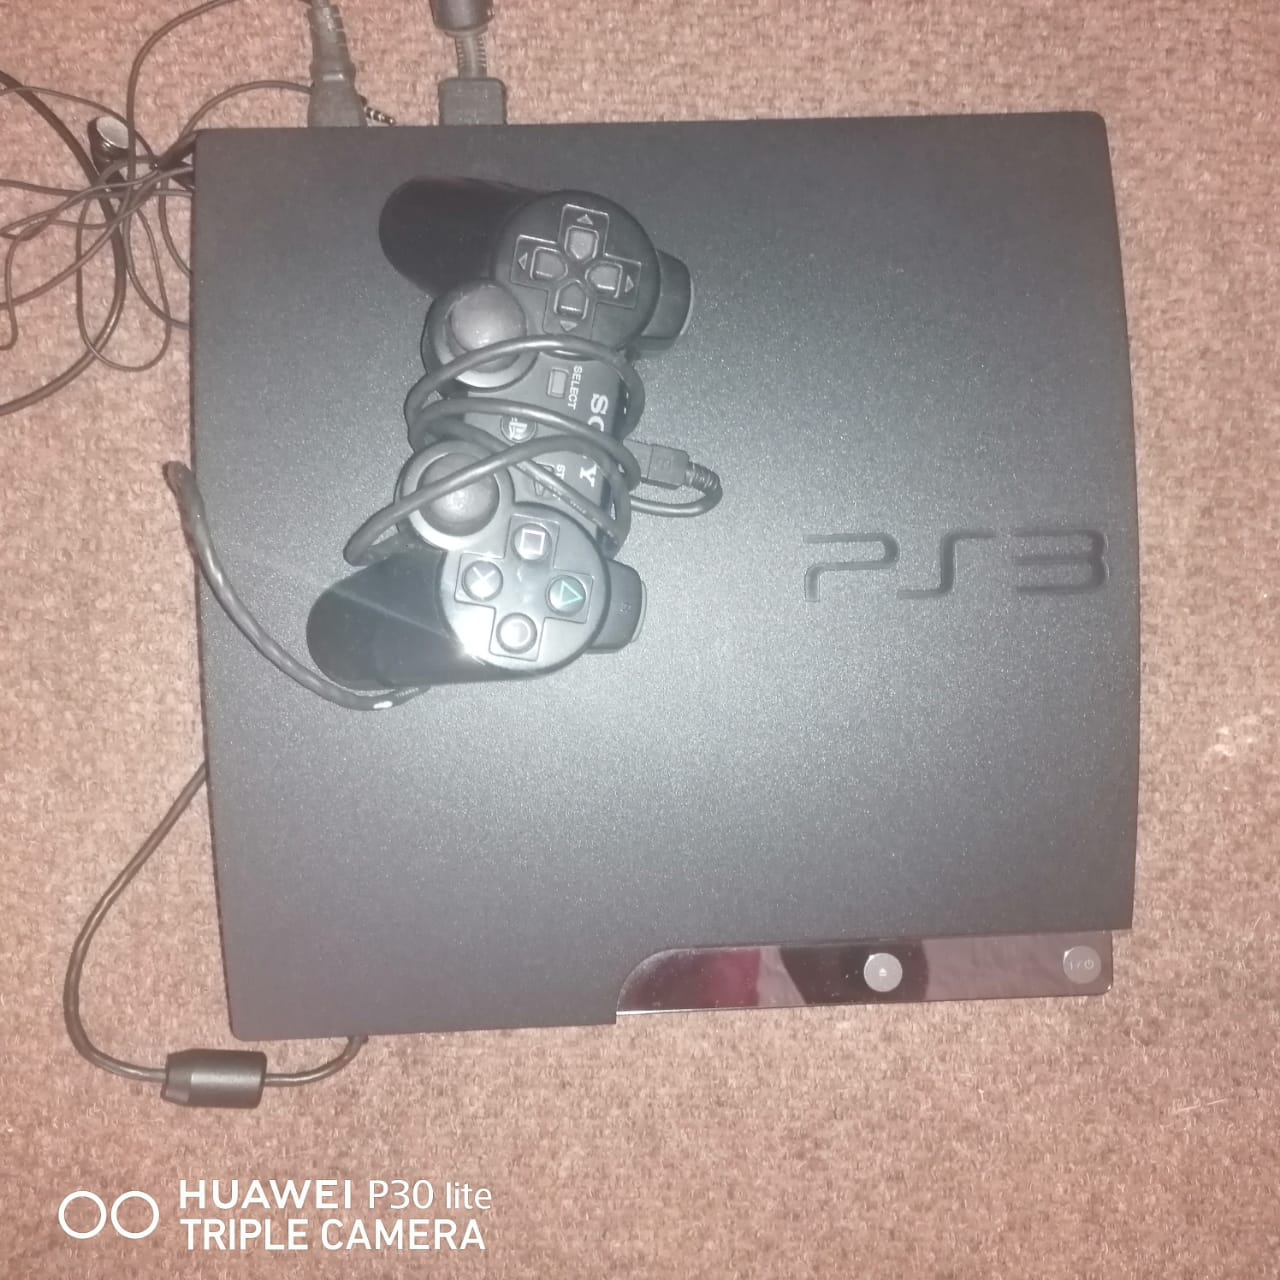 Play Station 3 and 4 for sale